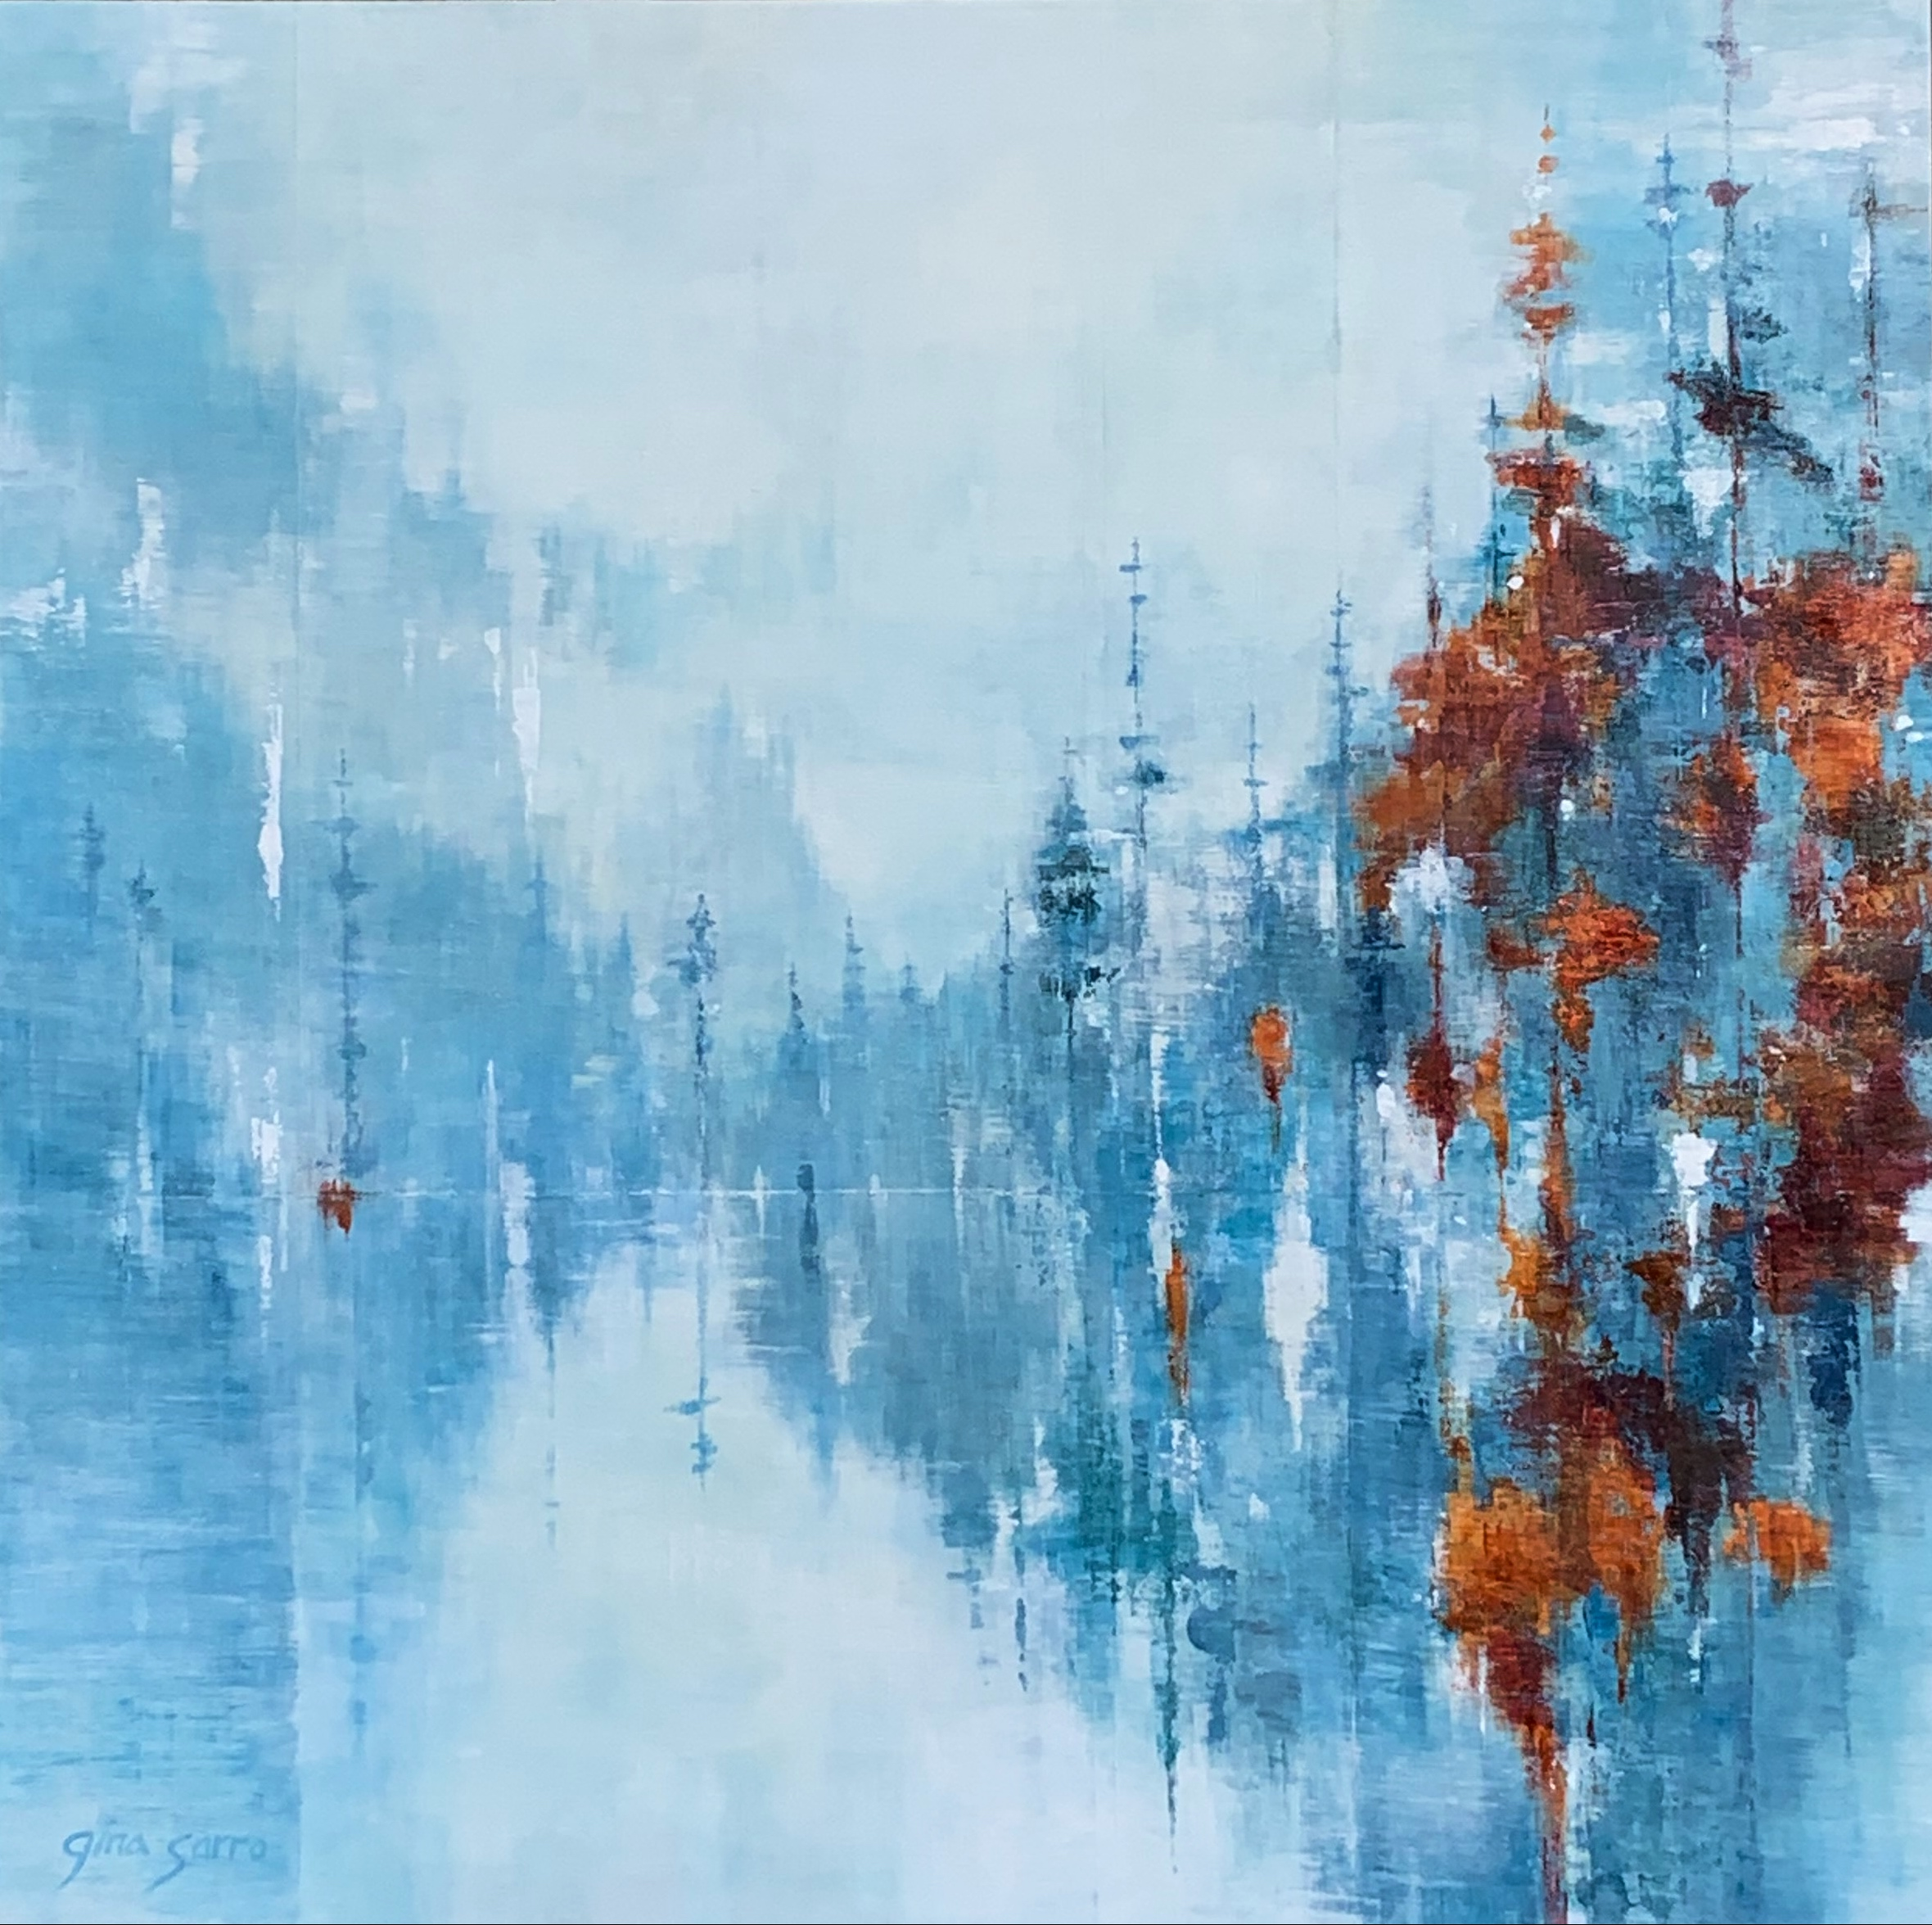 Wanting You Near, acrylic landscape painting by Gina Sarro | Effusion Art Gallery + Cast Glass Studio, Invermere BC